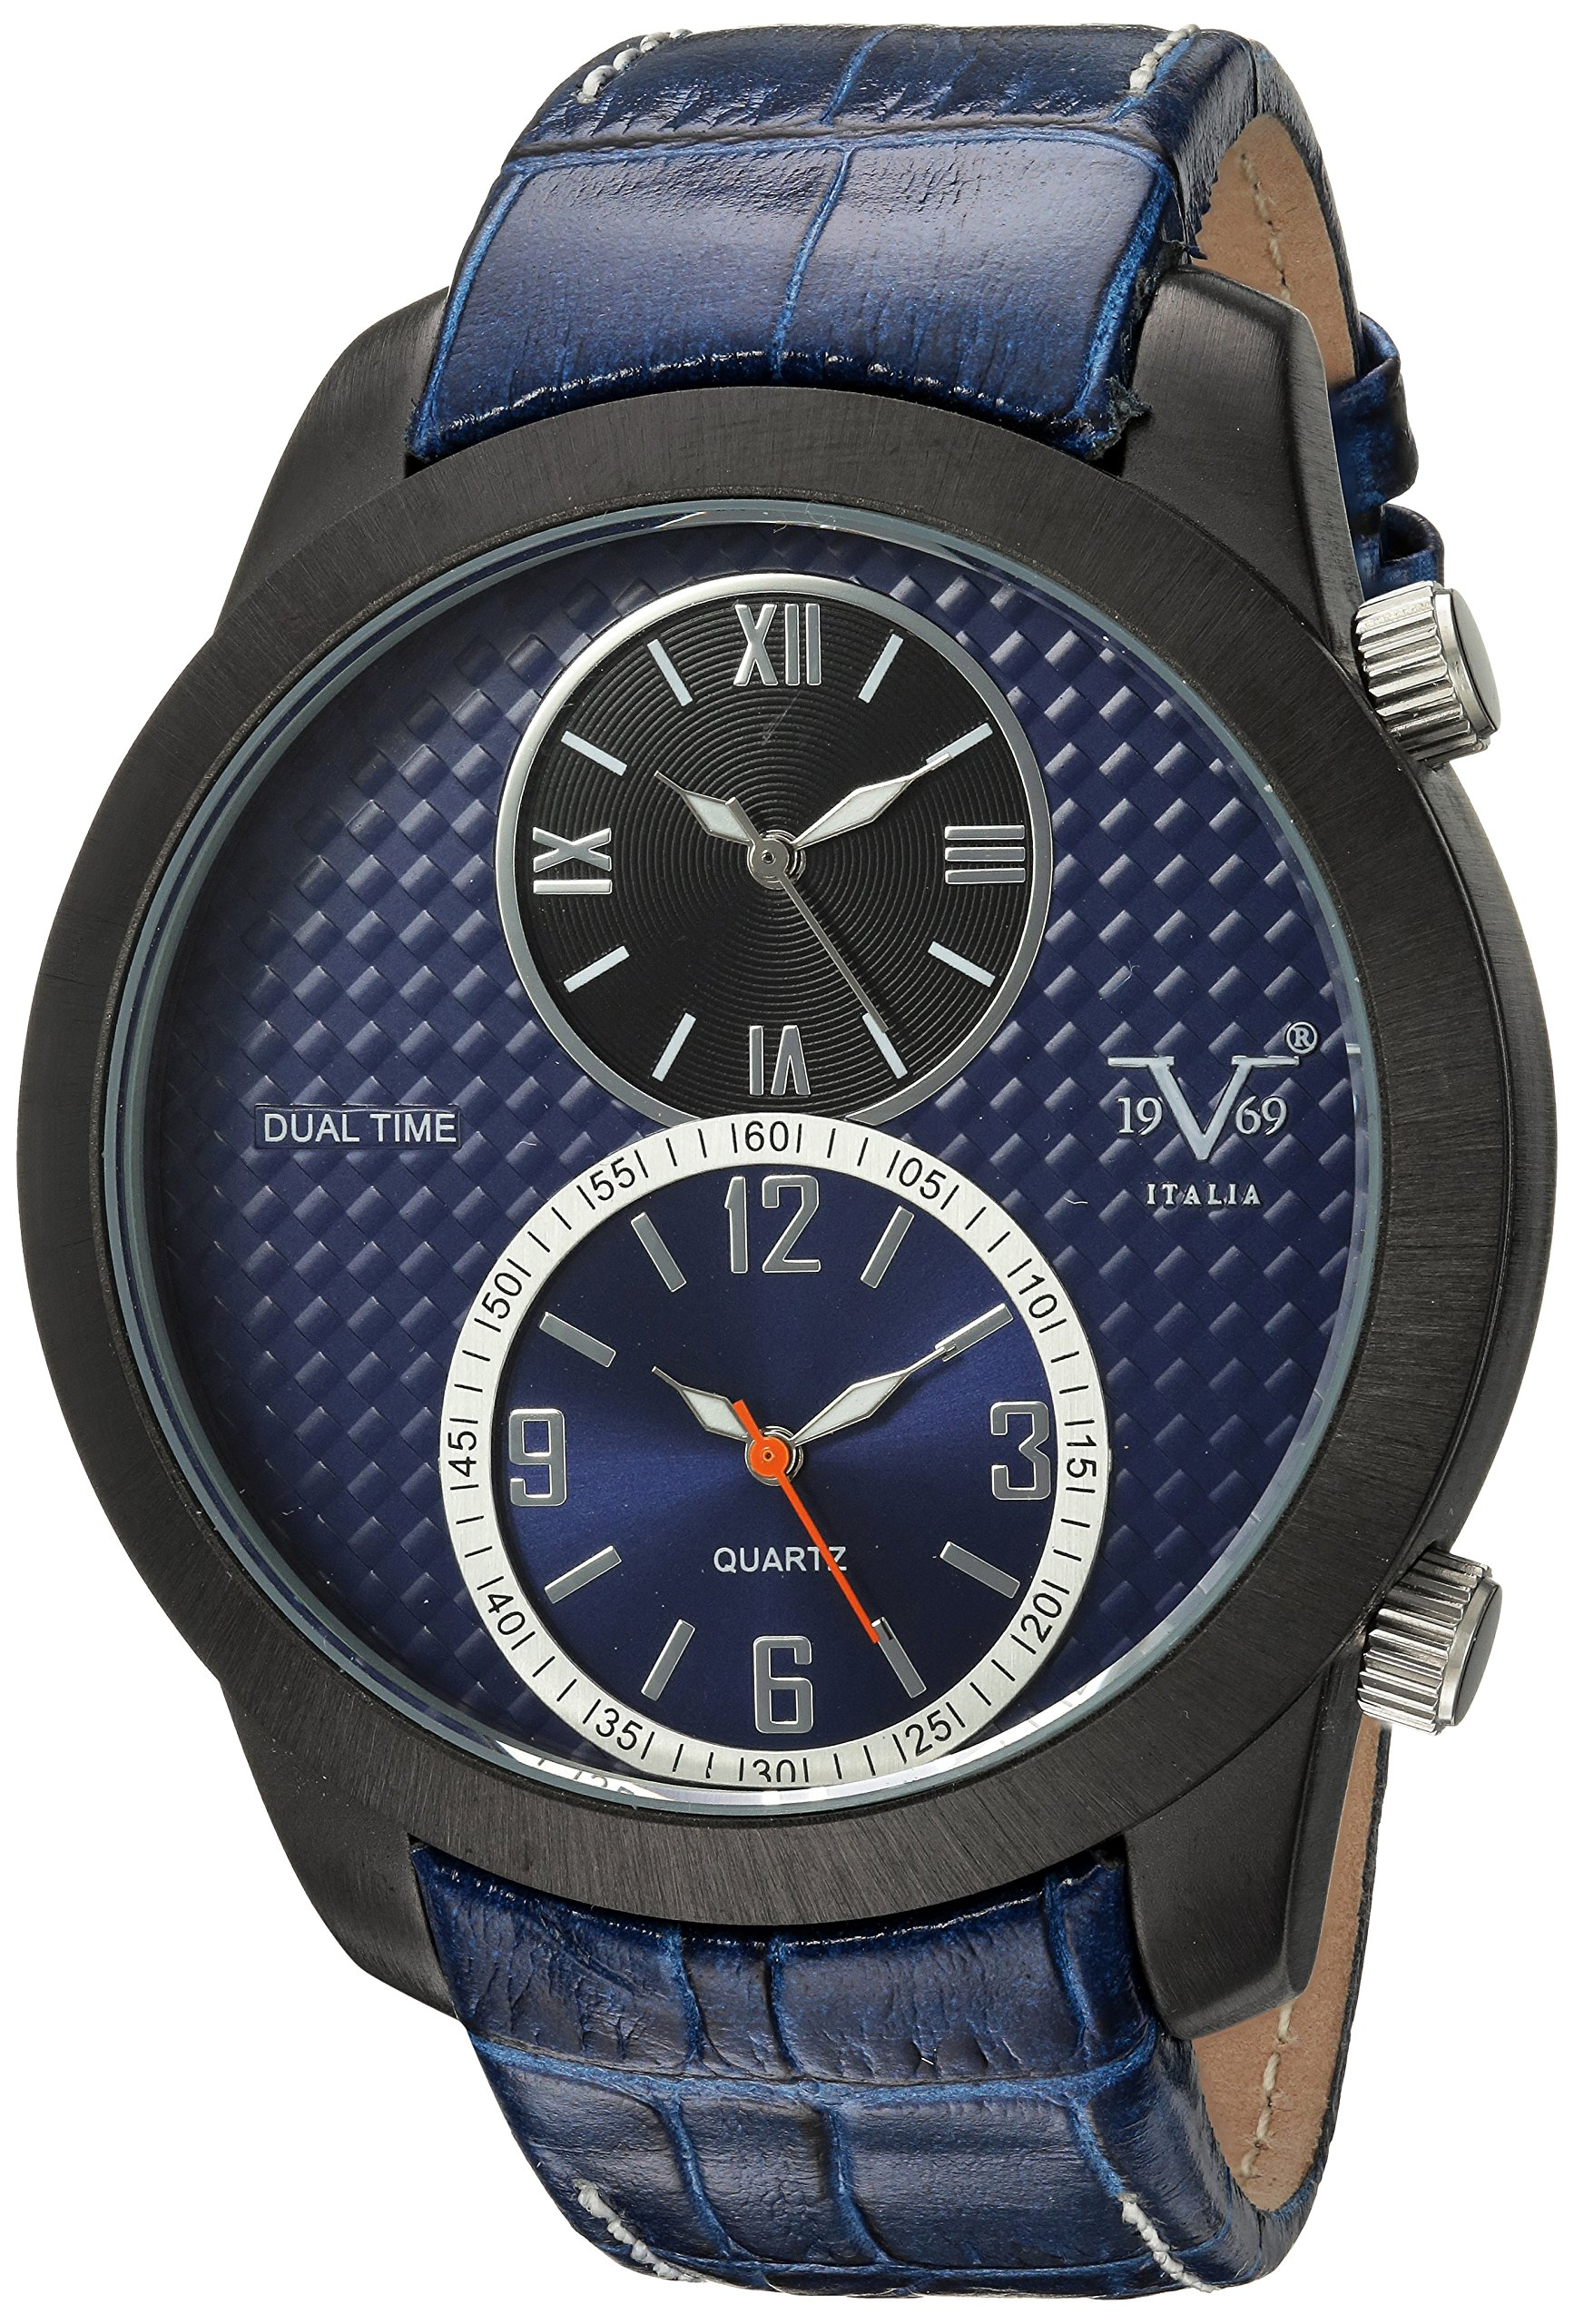 V19.69 Italia Men's Quartz Metal and Leather Casual Watch, Color:Blue (Model: 37VM103201A) by Wrist Armor (Image #1)